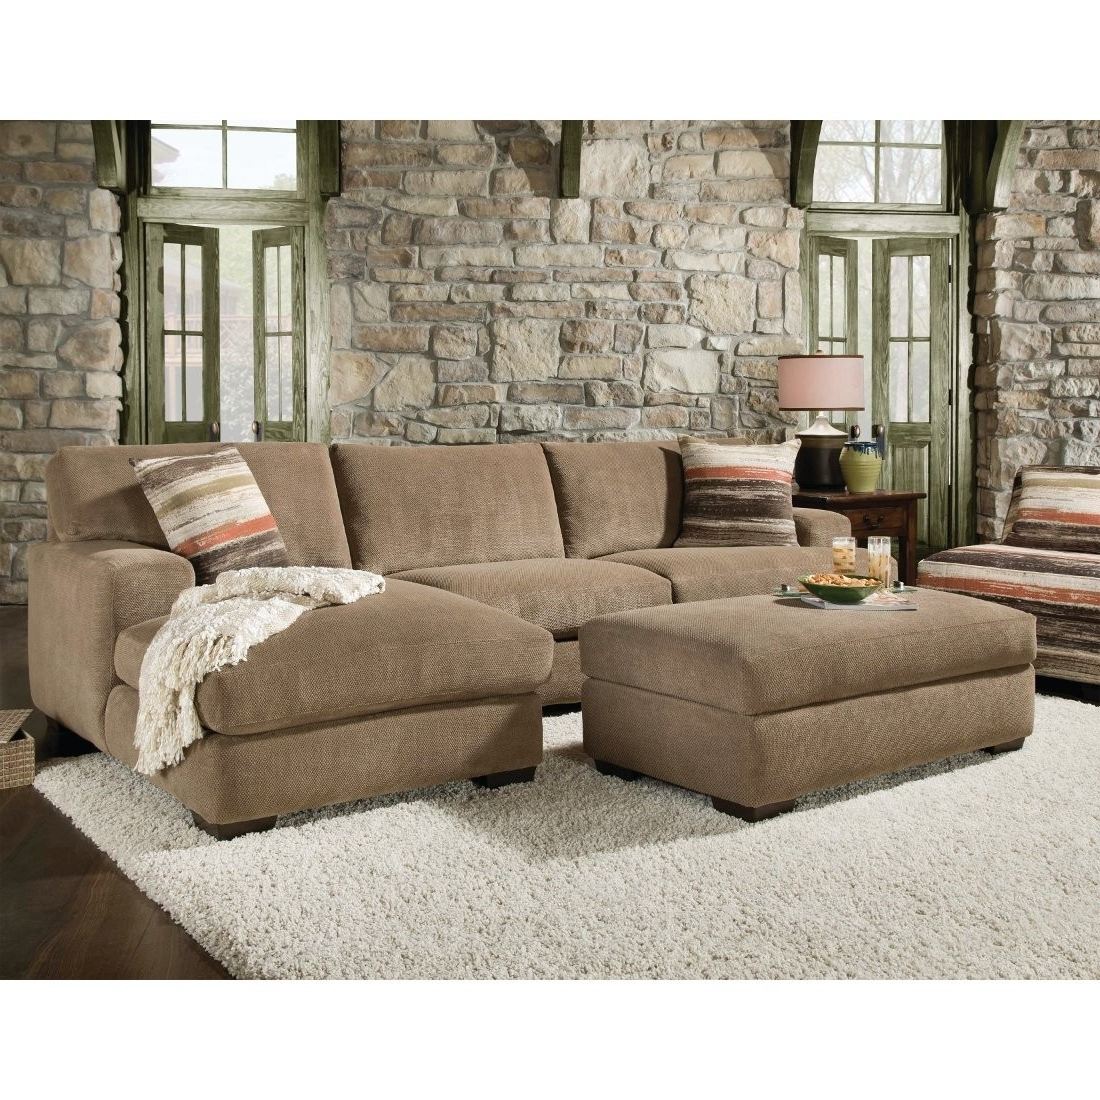 Well Known Beautiful Sectional Sofa With Chaise And Ottoman Pictures For Sectional Sofas With Chaise Lounge And Ottoman (View 6 of 20)